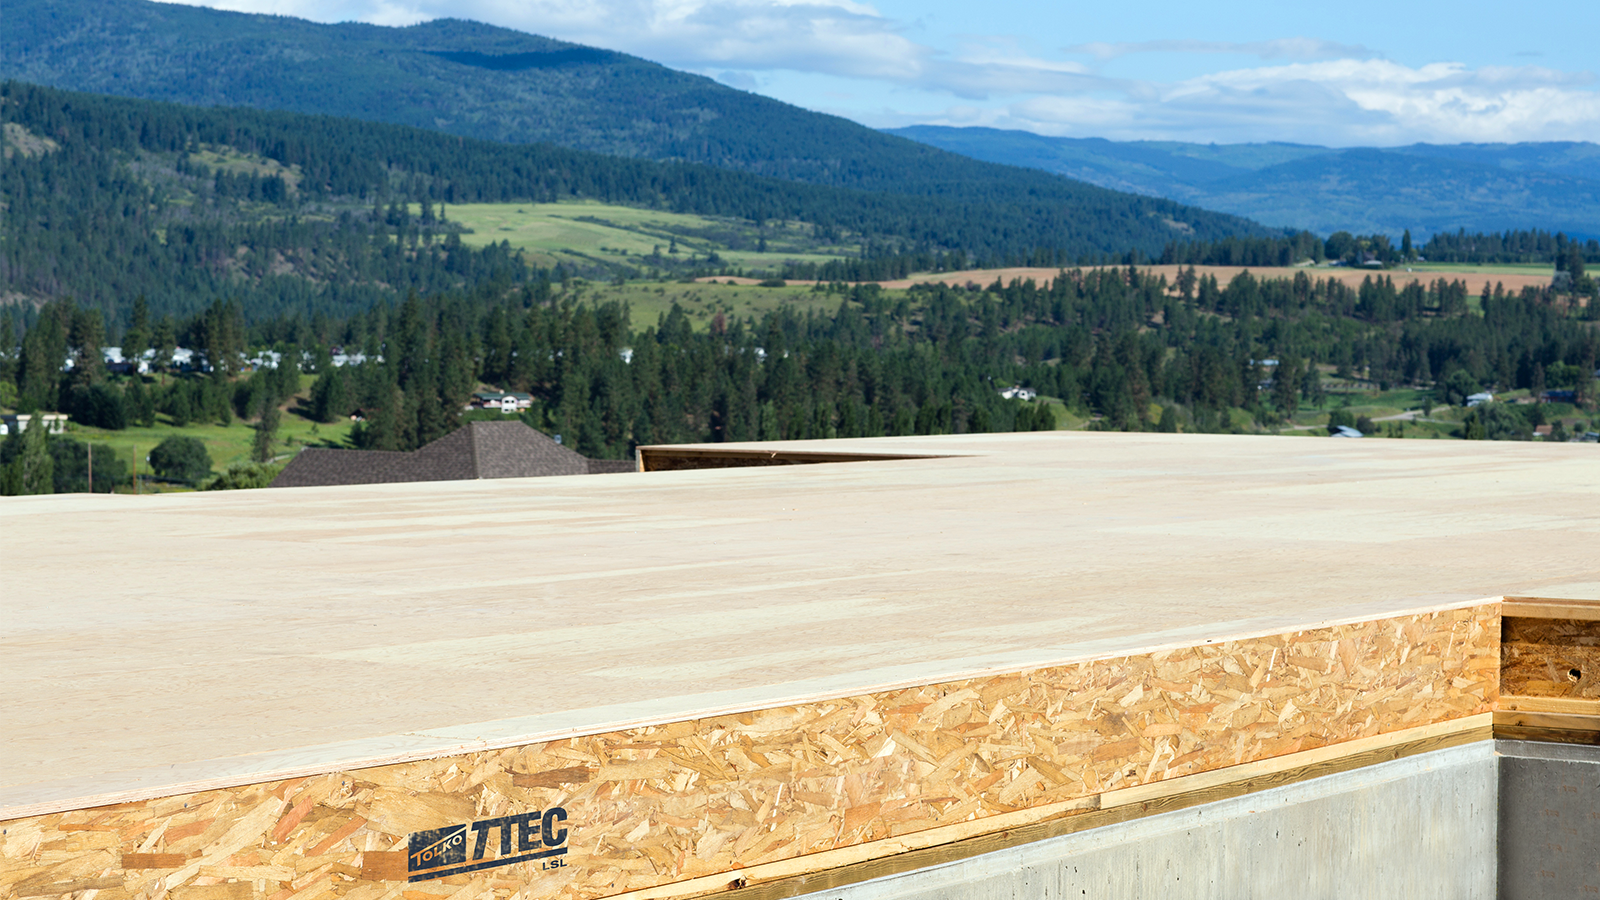 Tolko T-TEC LSL Rim Board product used at residential construction site